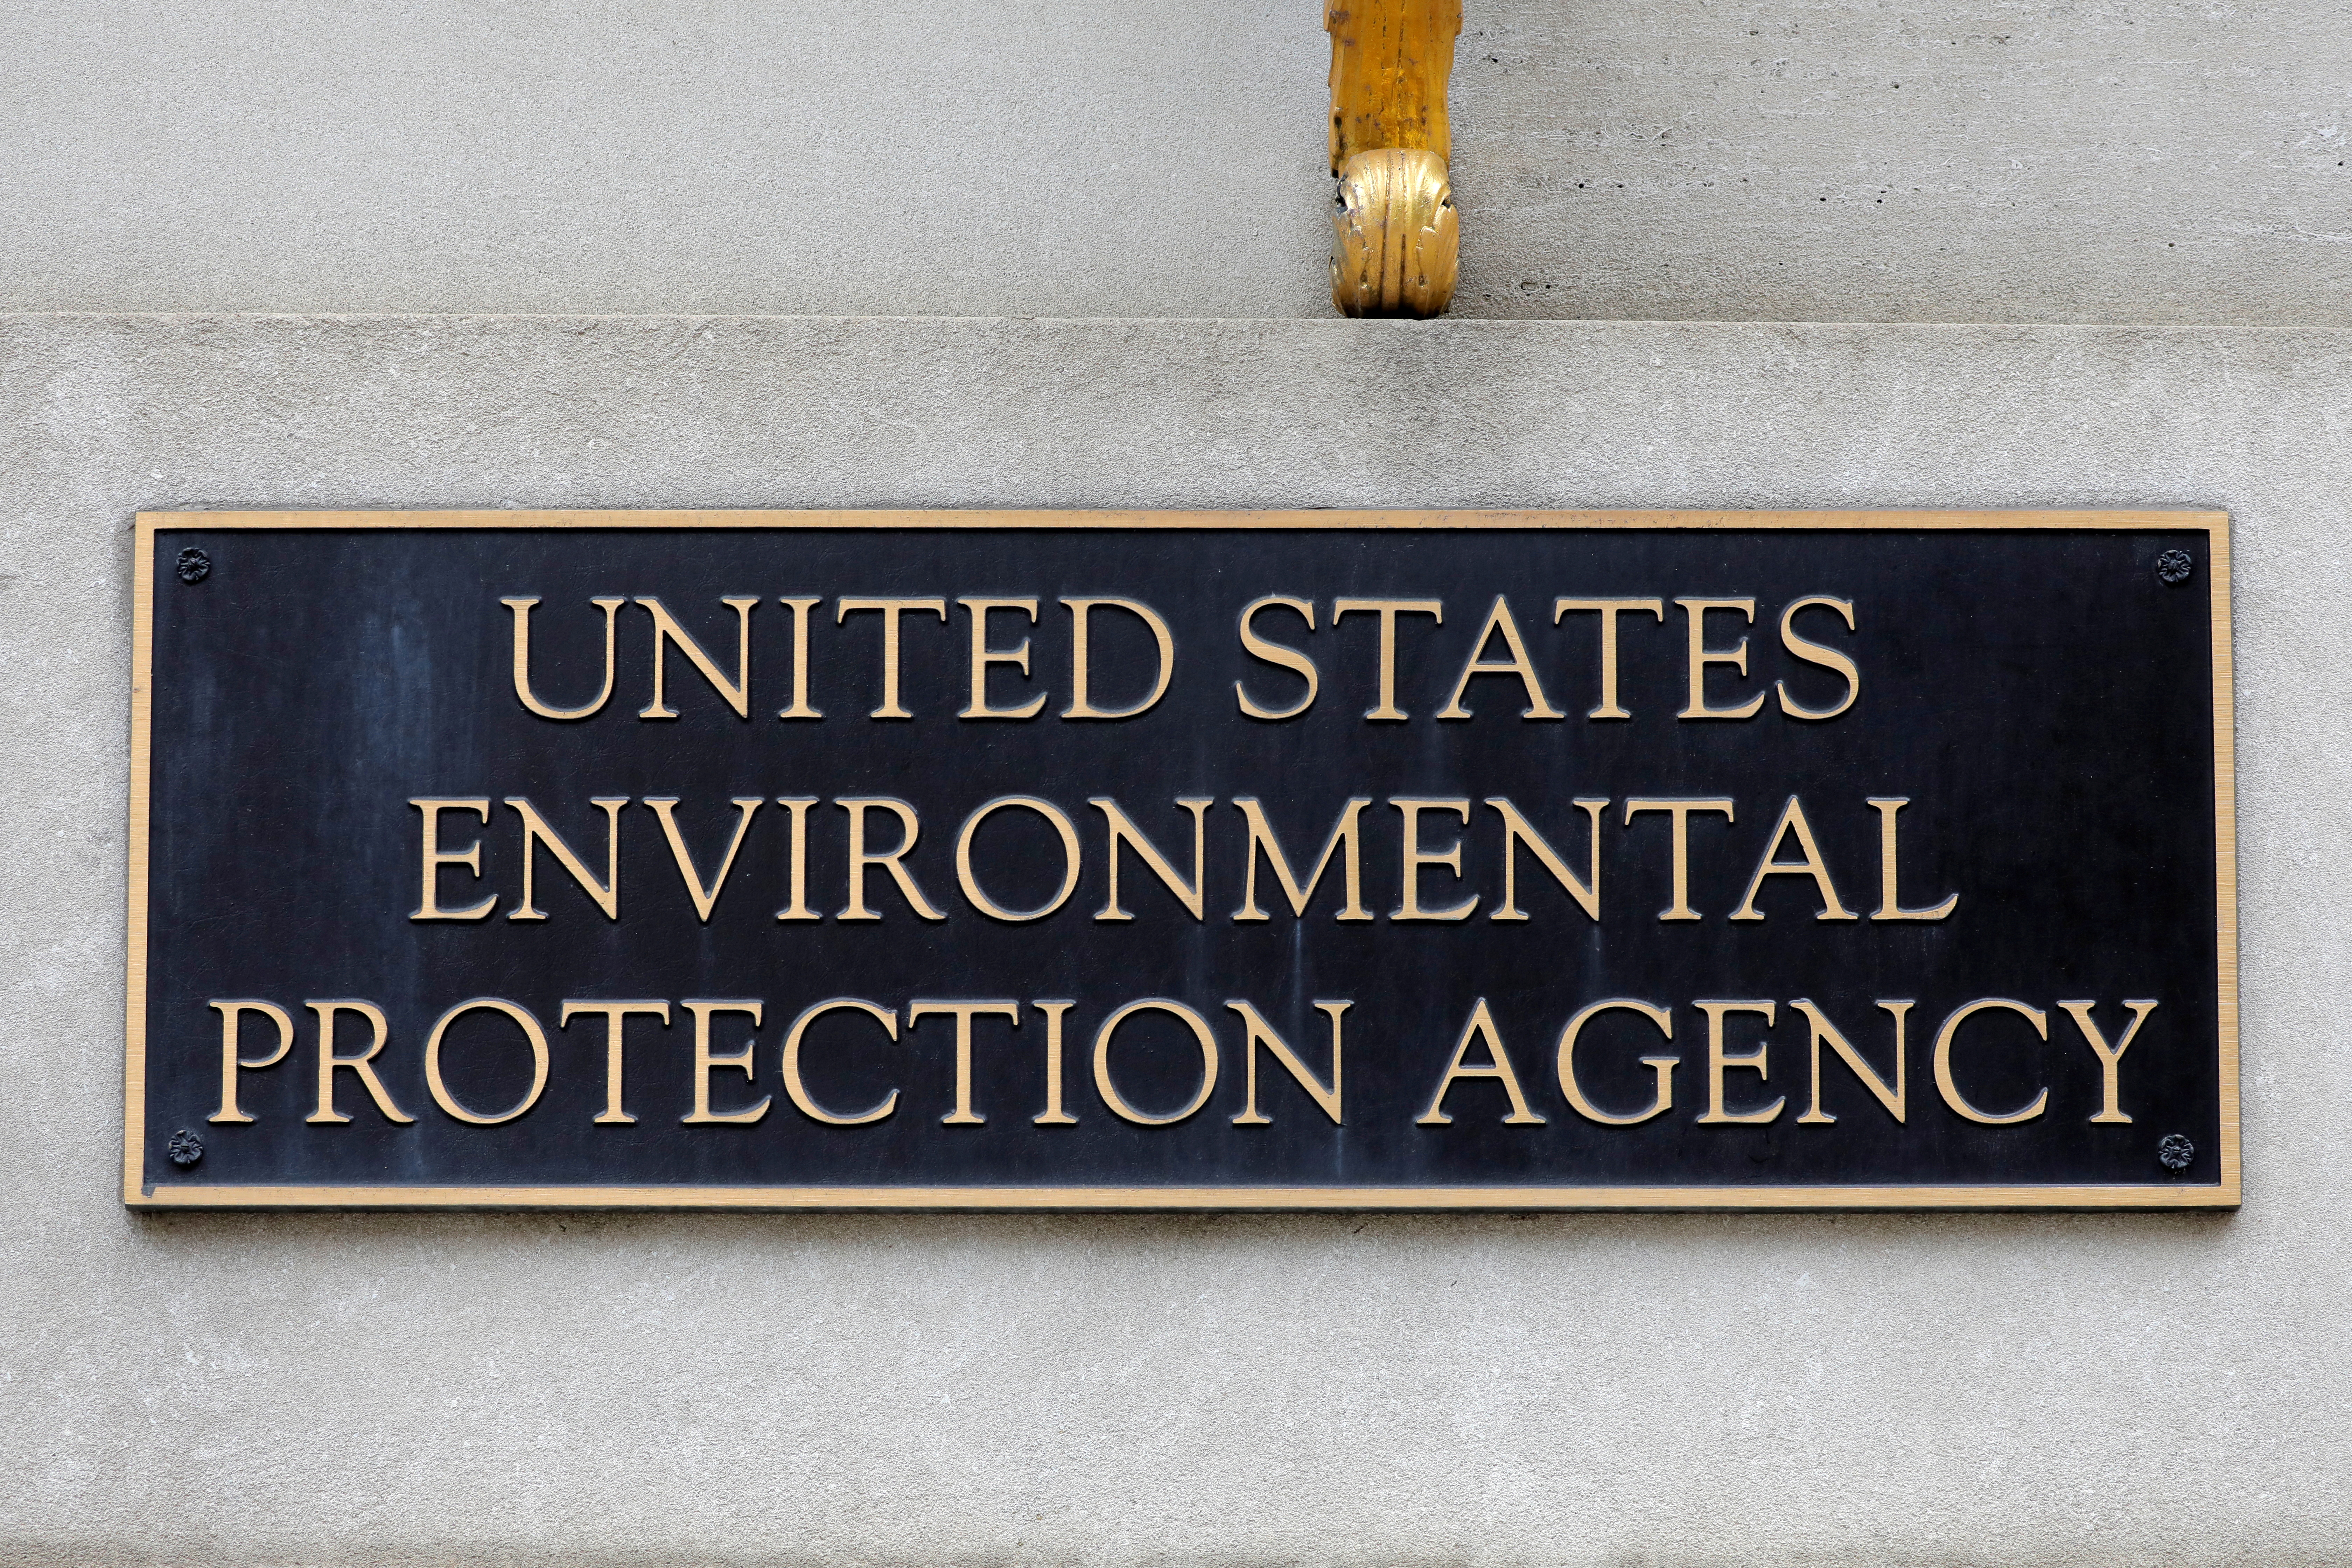 Headquarters of the United States Environmental Protection Agency in Washington, D.C. REUTERS/Andrew Kelly